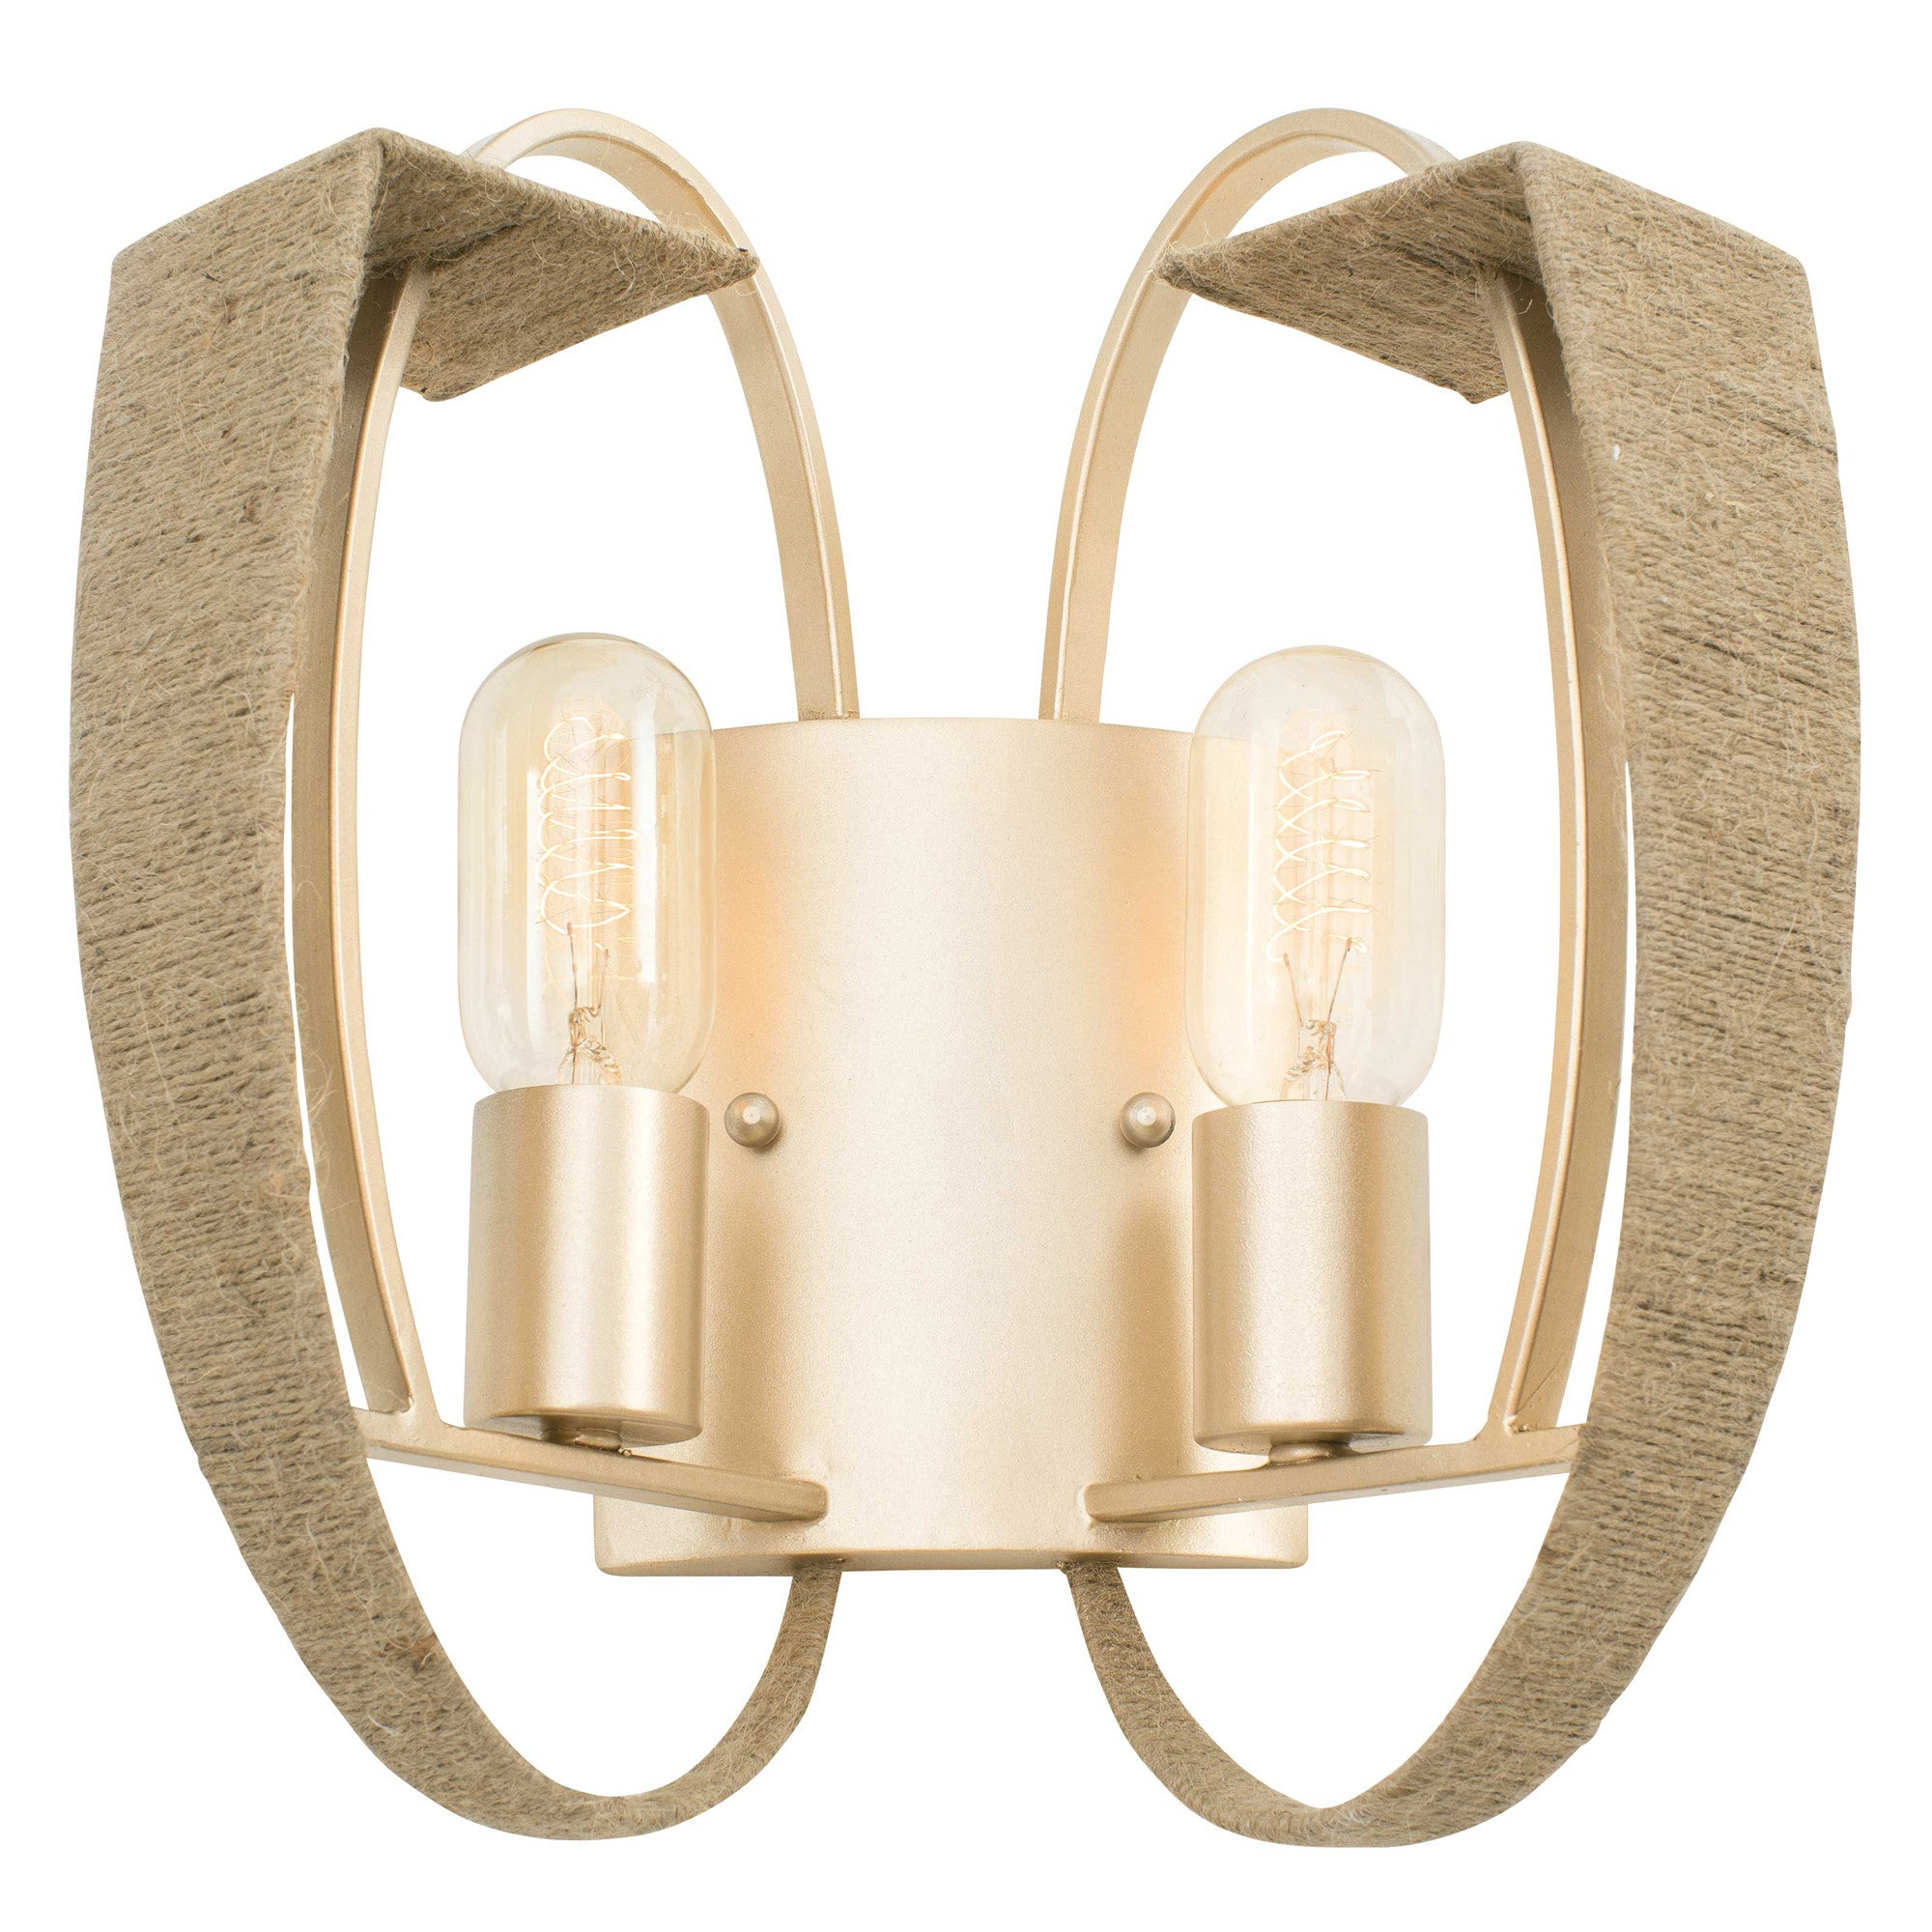 Tinali 2 Light Wall Sconce